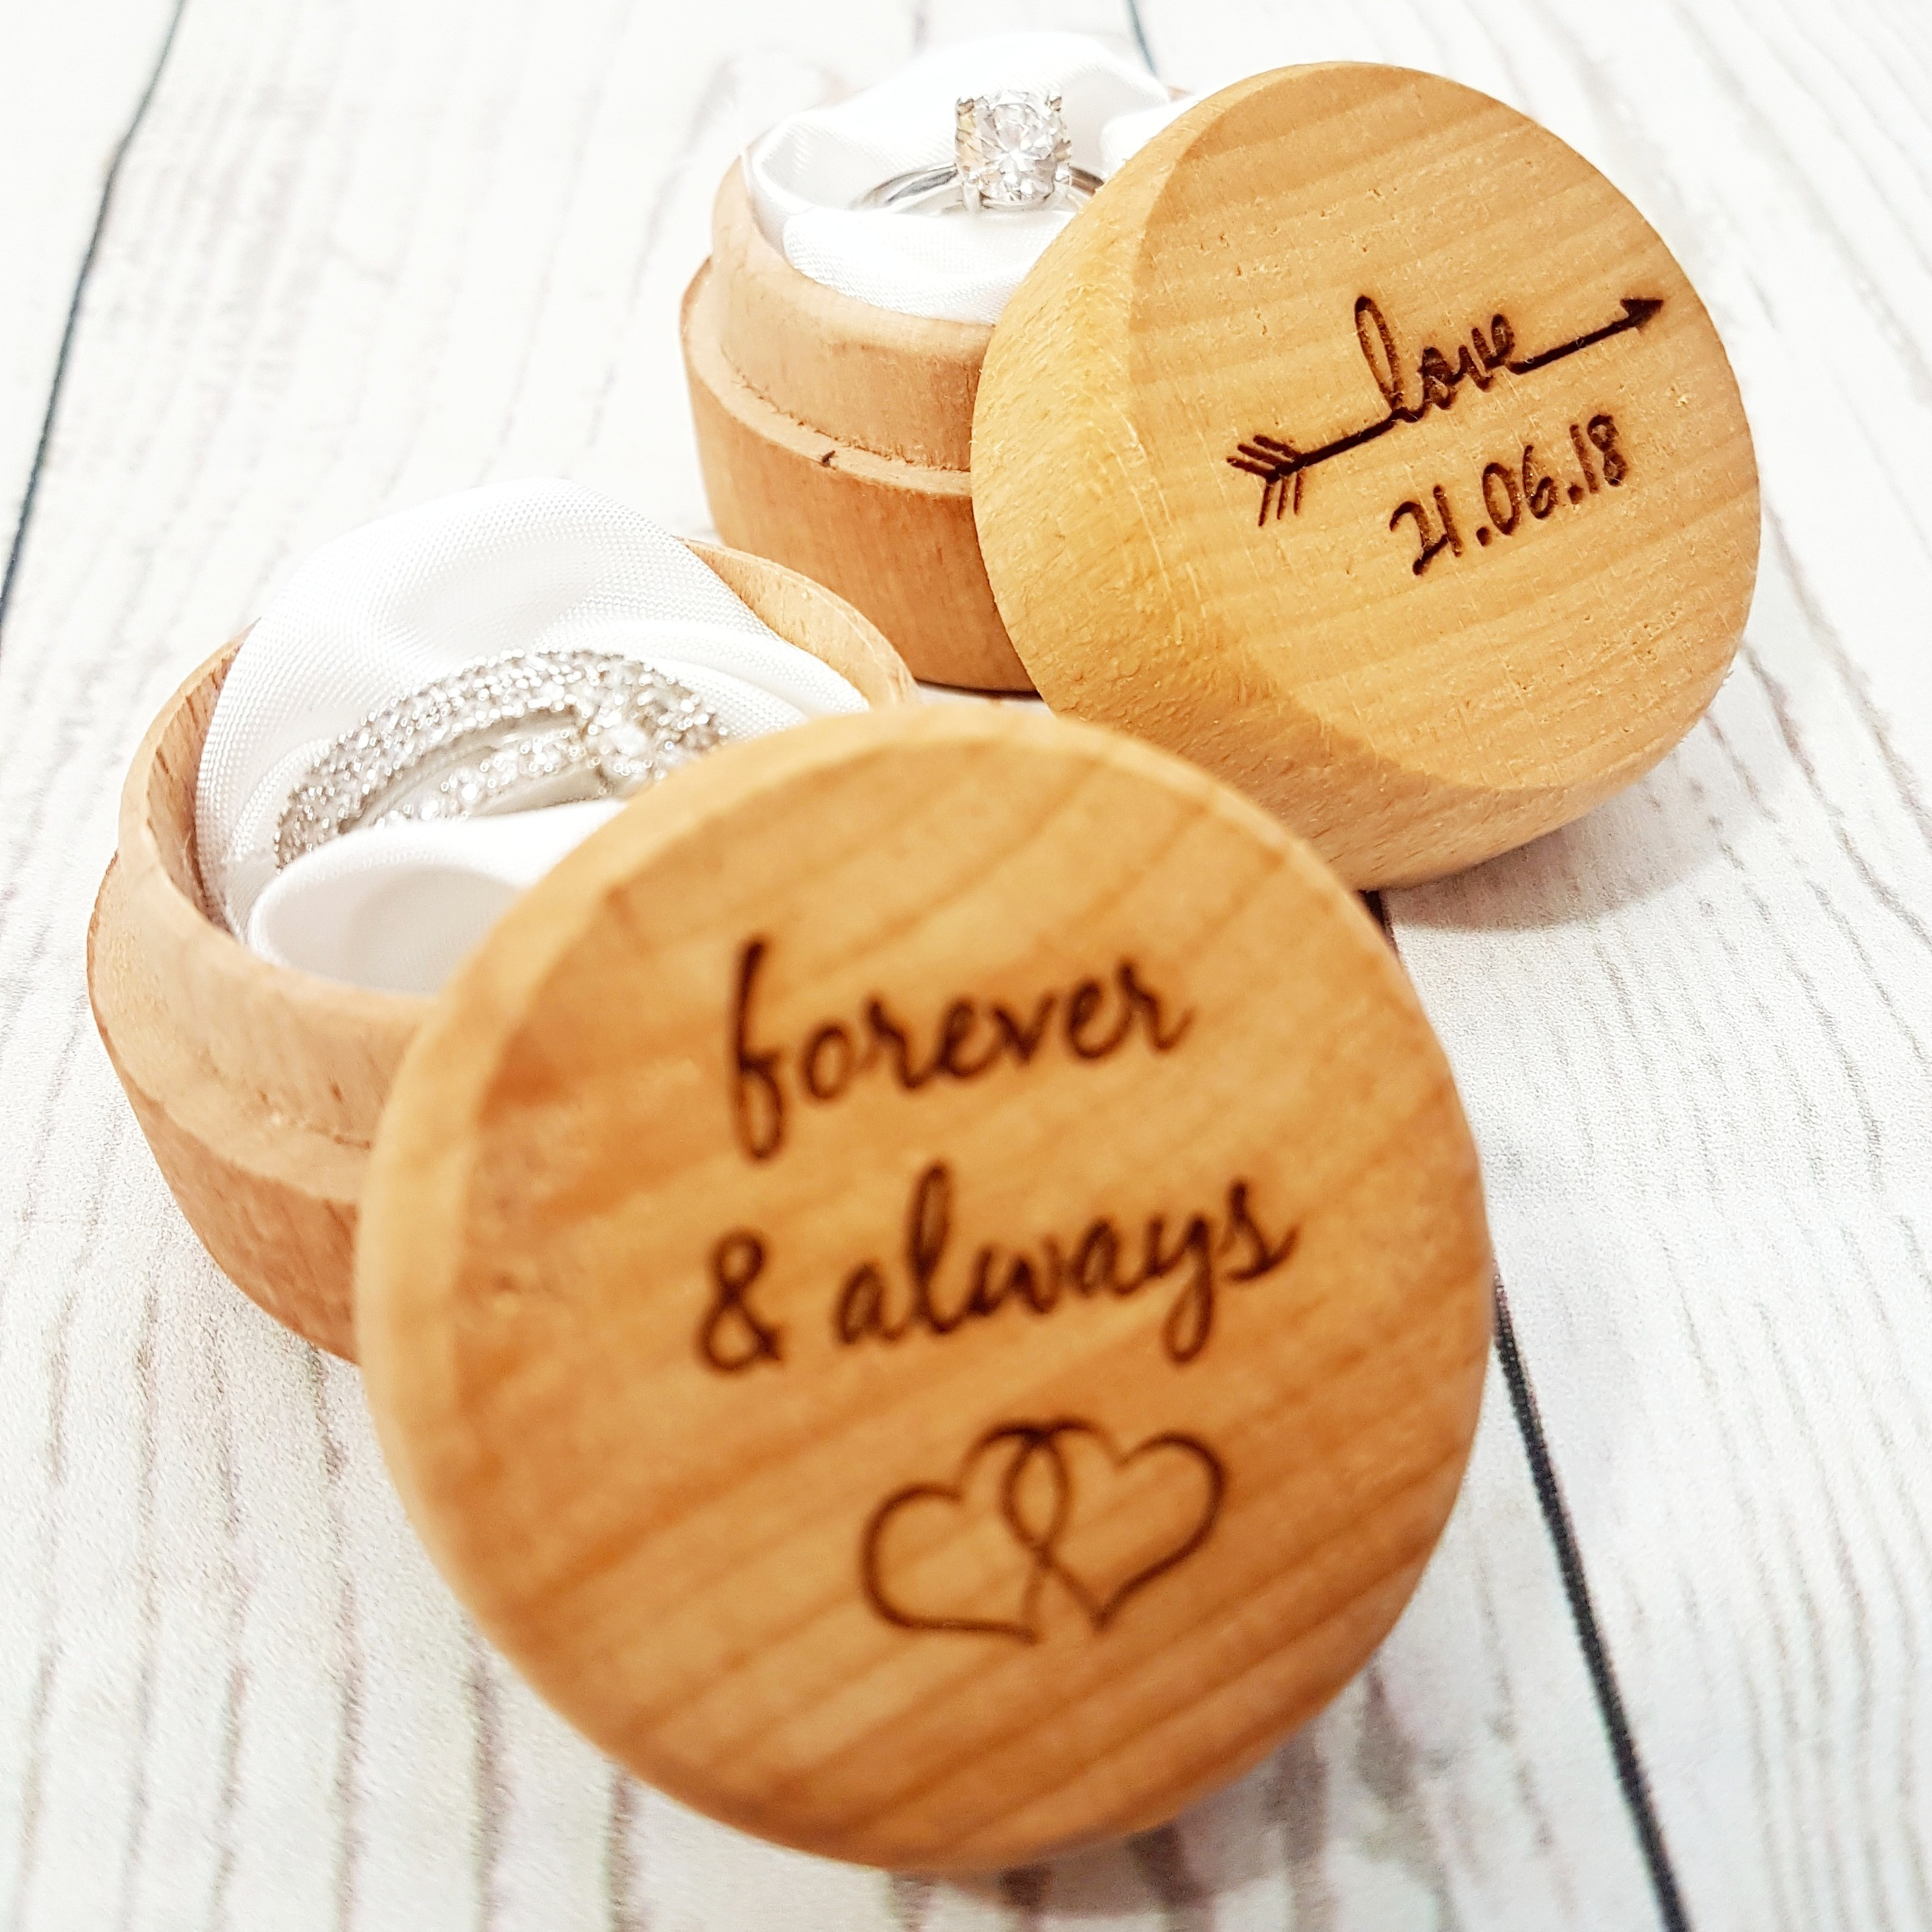 Forever & Always Ring Box I Personalised Anniversary Gift Ideas I Make Memento